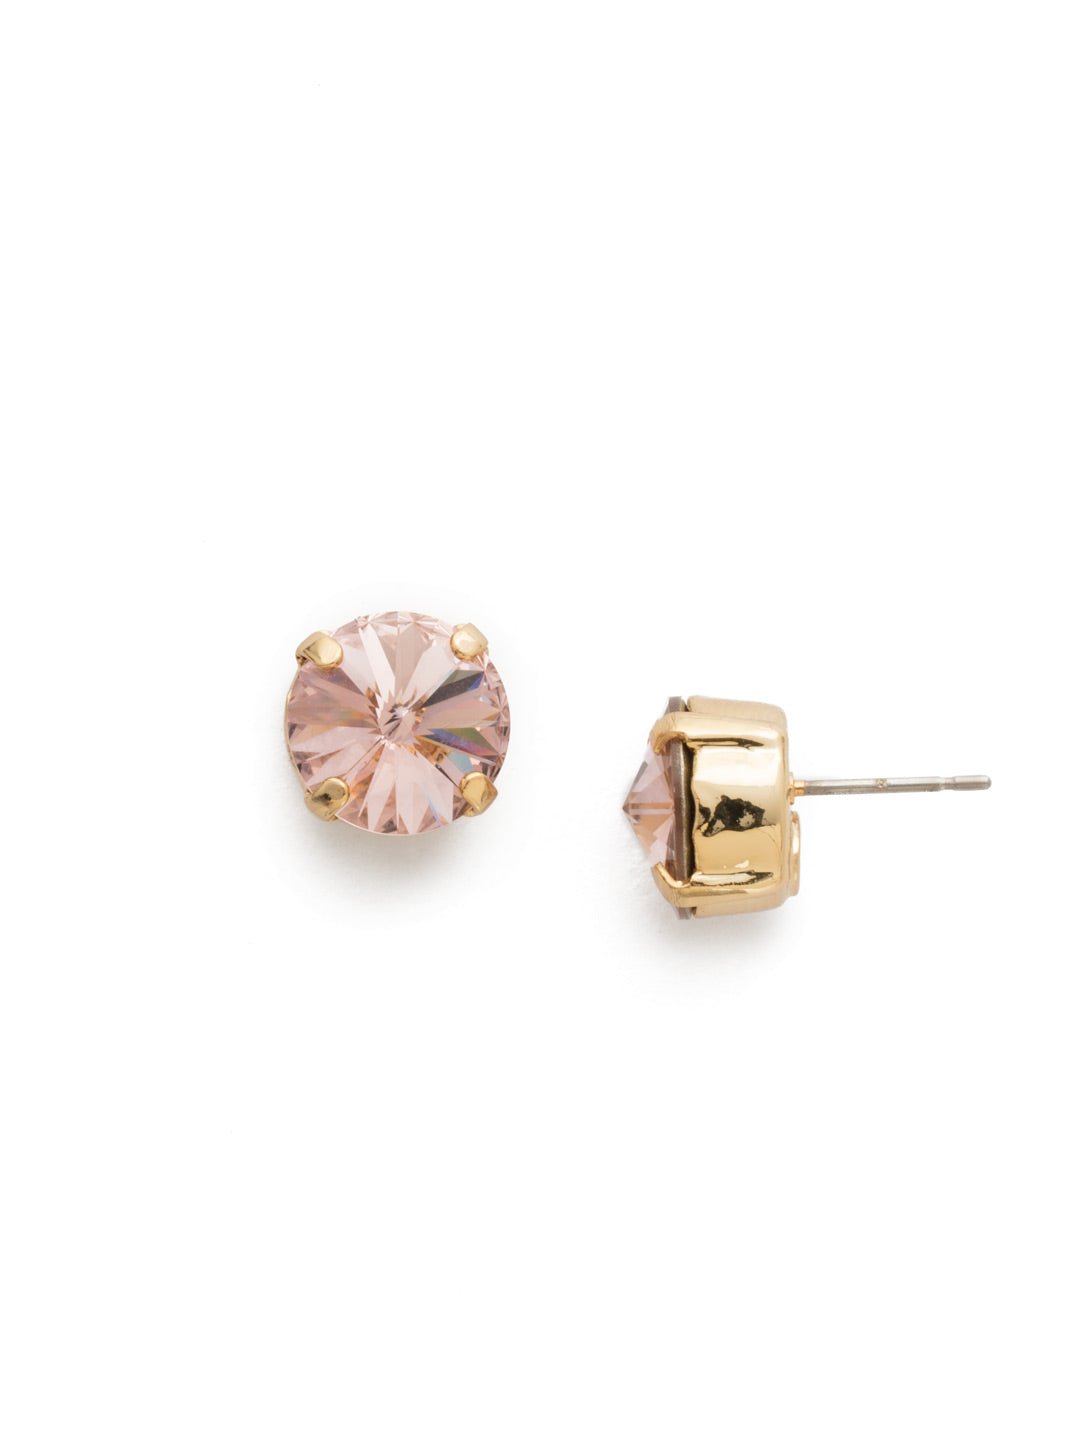 Round Crystal Stud Earrings - ECM14BGVIN